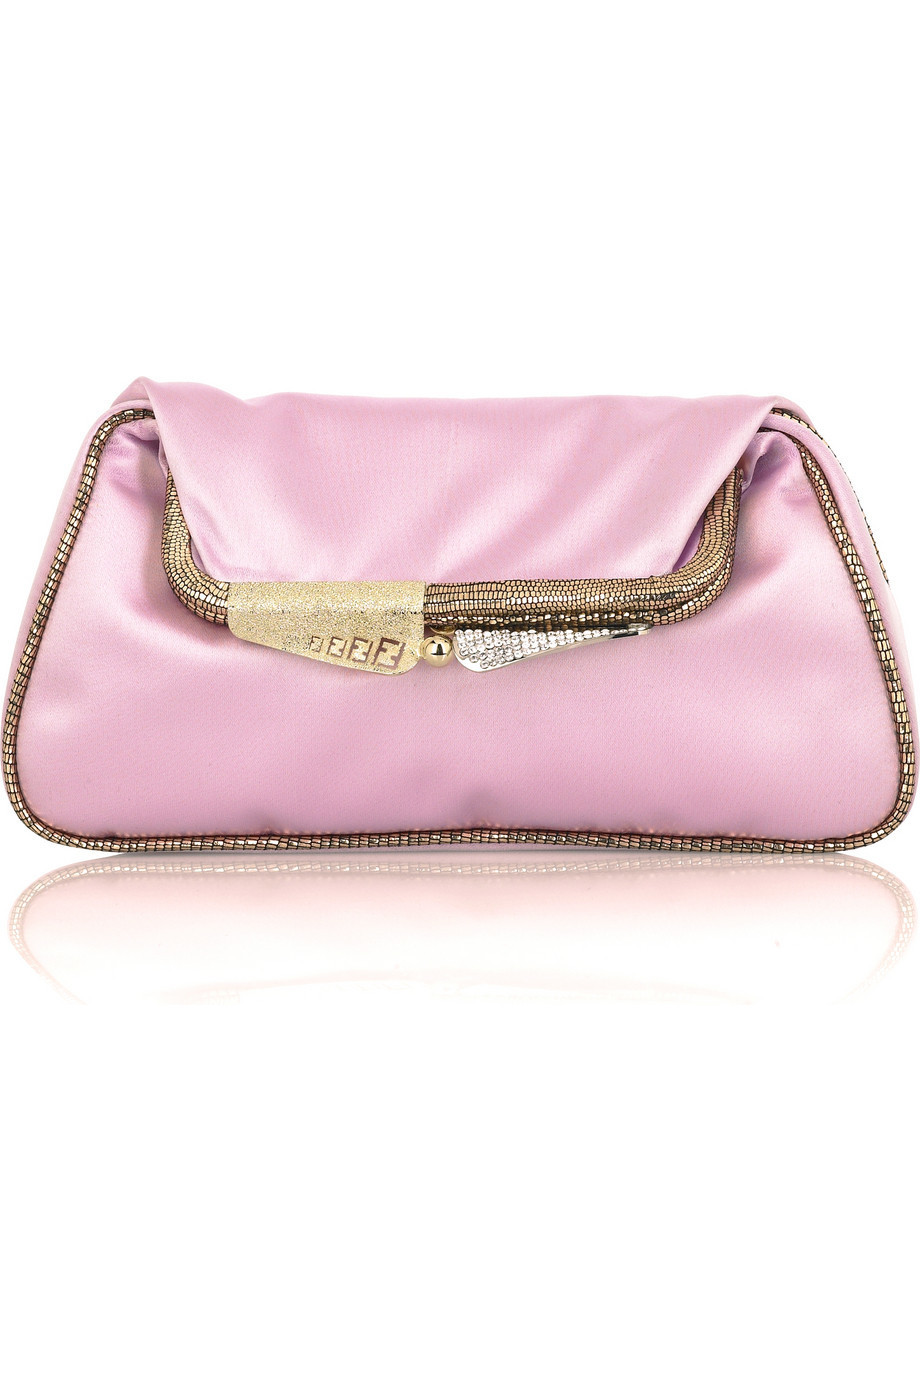 Fendi Mini Borderline satin clutch  | NET-A-PORTER.COM from net-a-porter.com